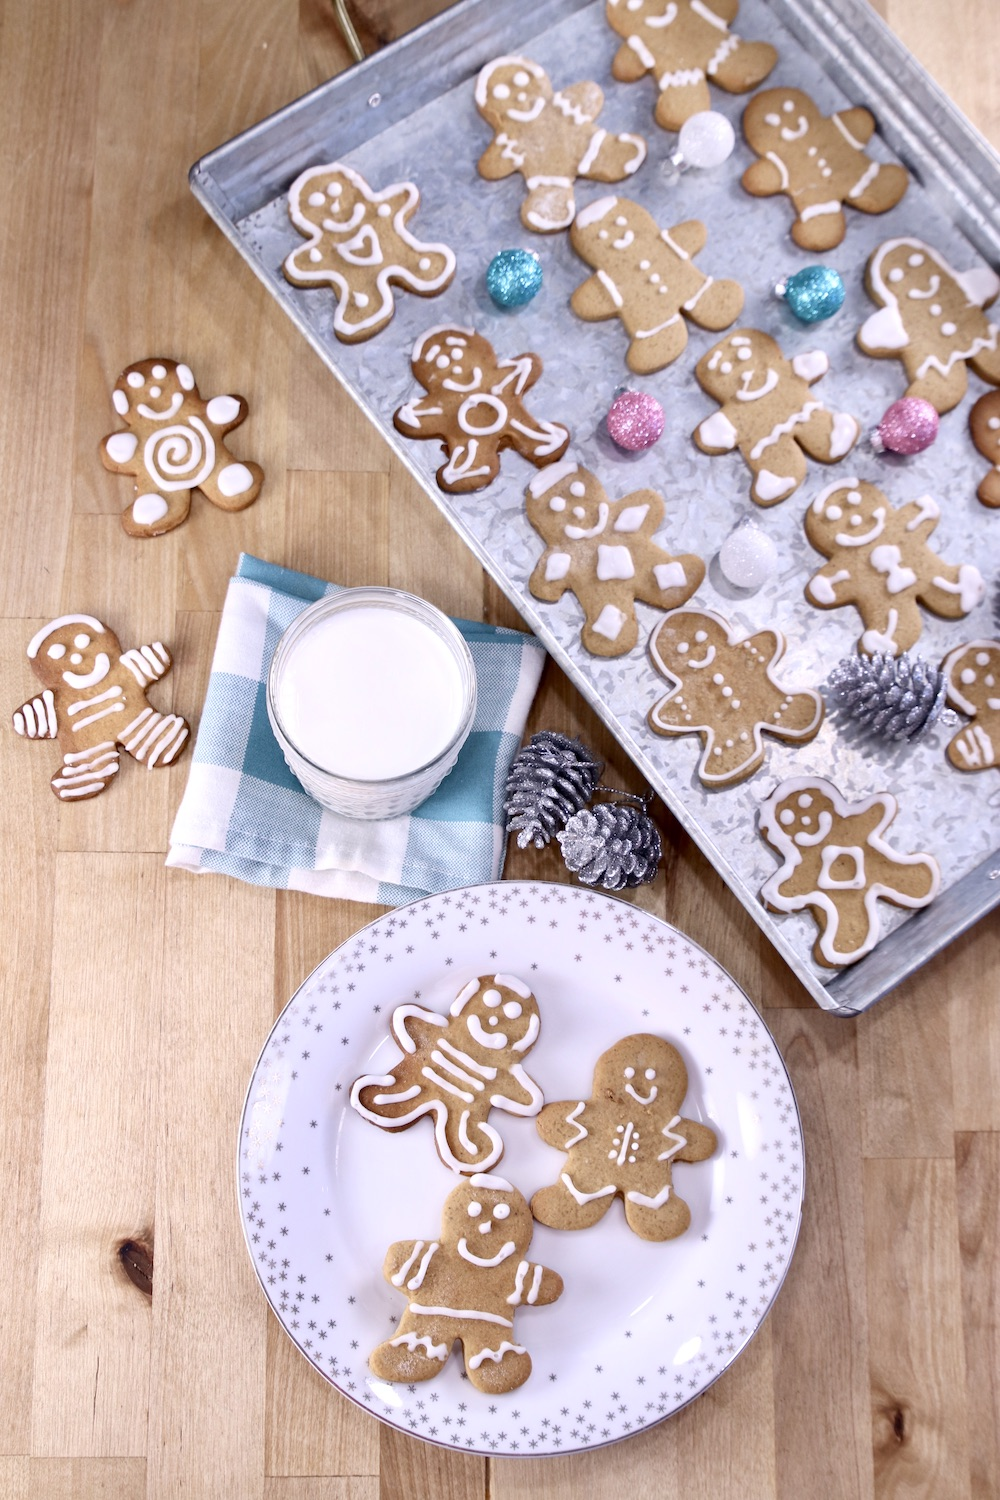 Gingerbread Cookies on a plate and a tray - overhead view